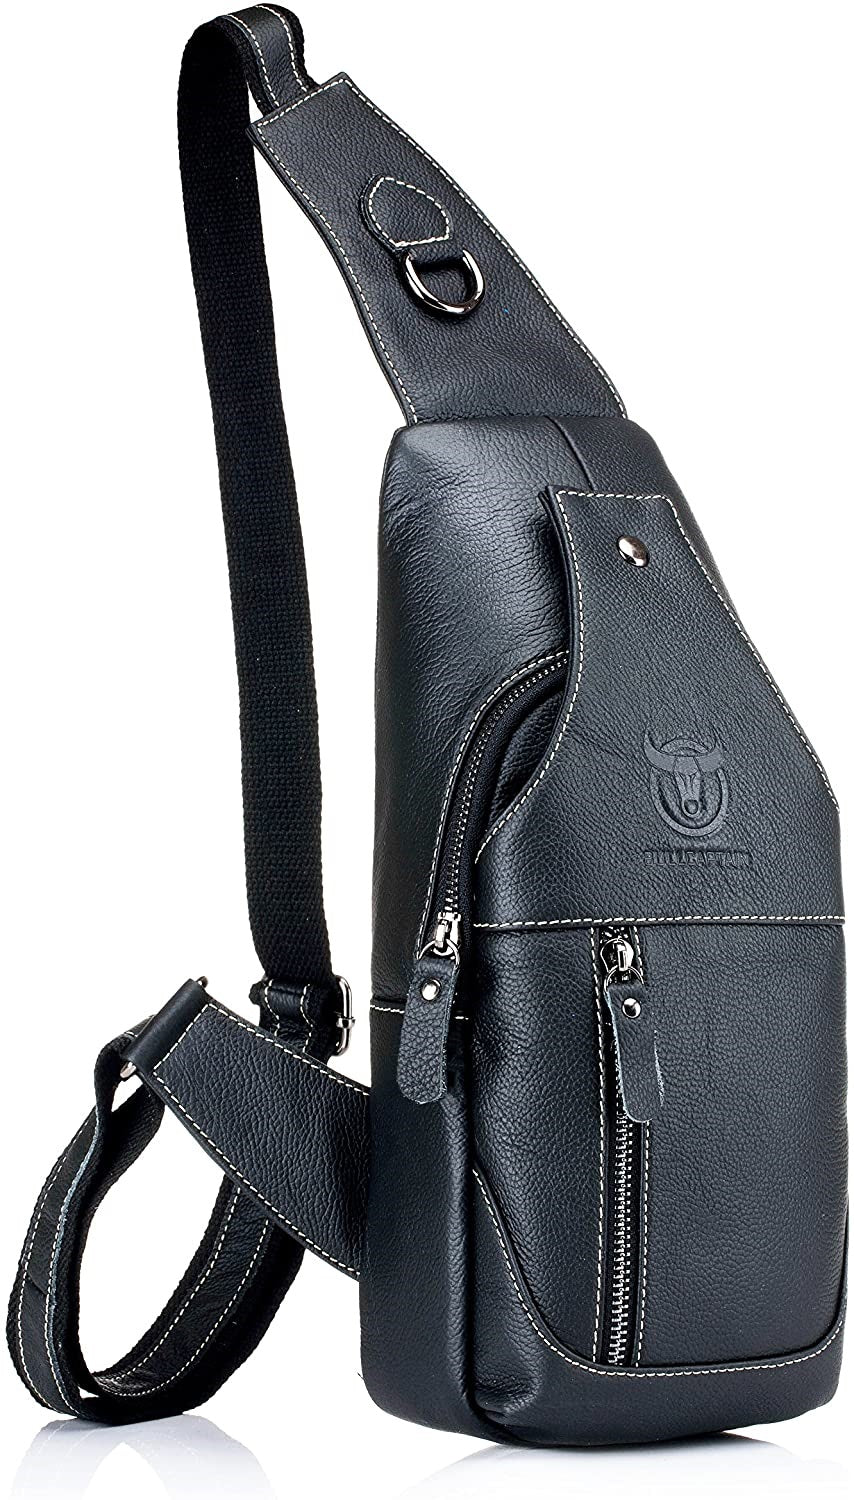 Black Leather Crossbody Bag Genuine Leather Chest Shoulder Backpack Crossbody Purse Water Resistant Anti Theft Back Angle View